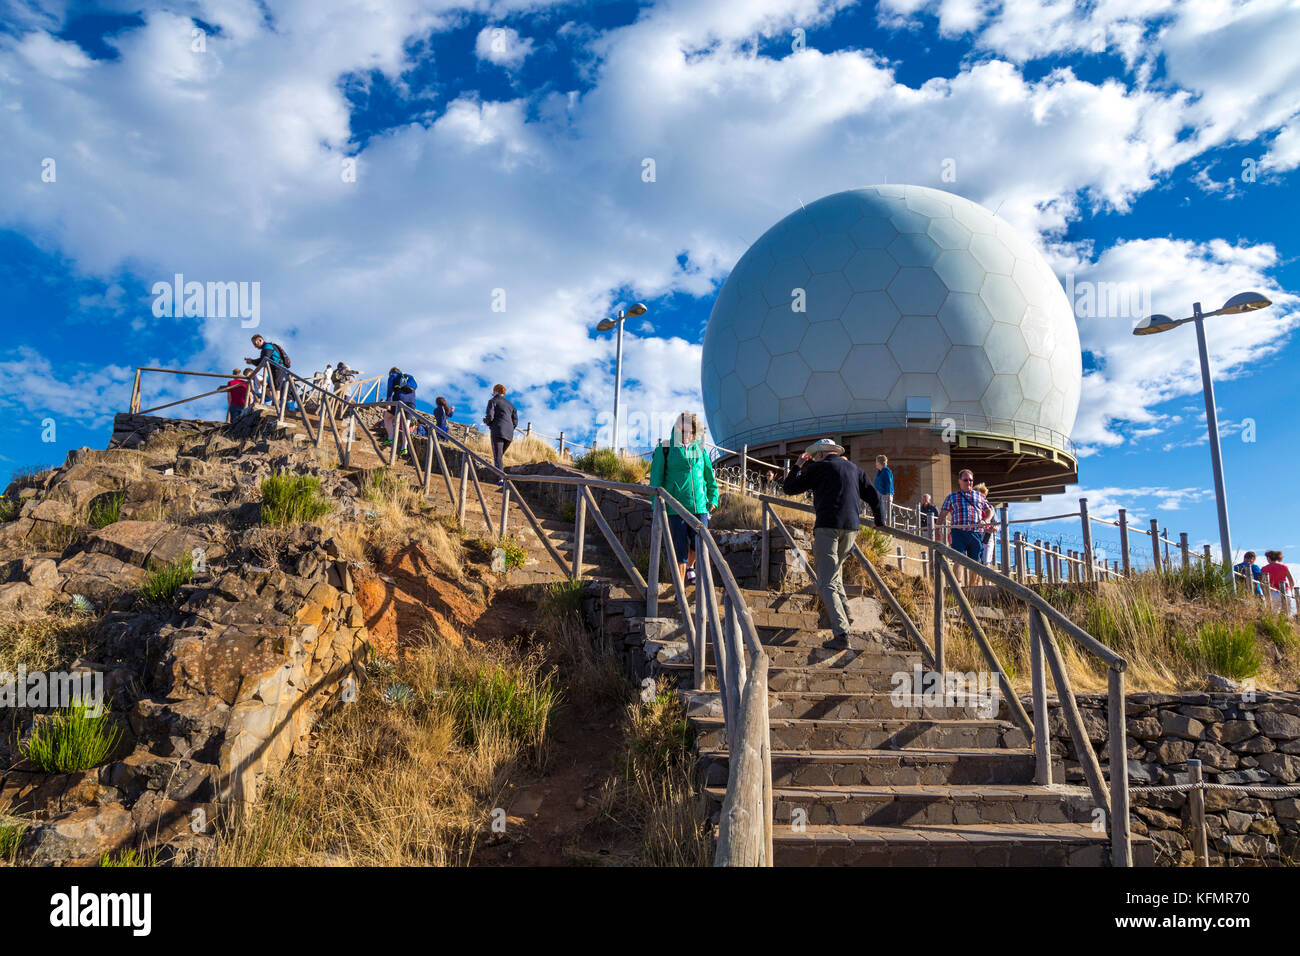 Air Defence Radar Station and people at the summit of Pico do Arieiro, Madeira, Portugal - Stock Image